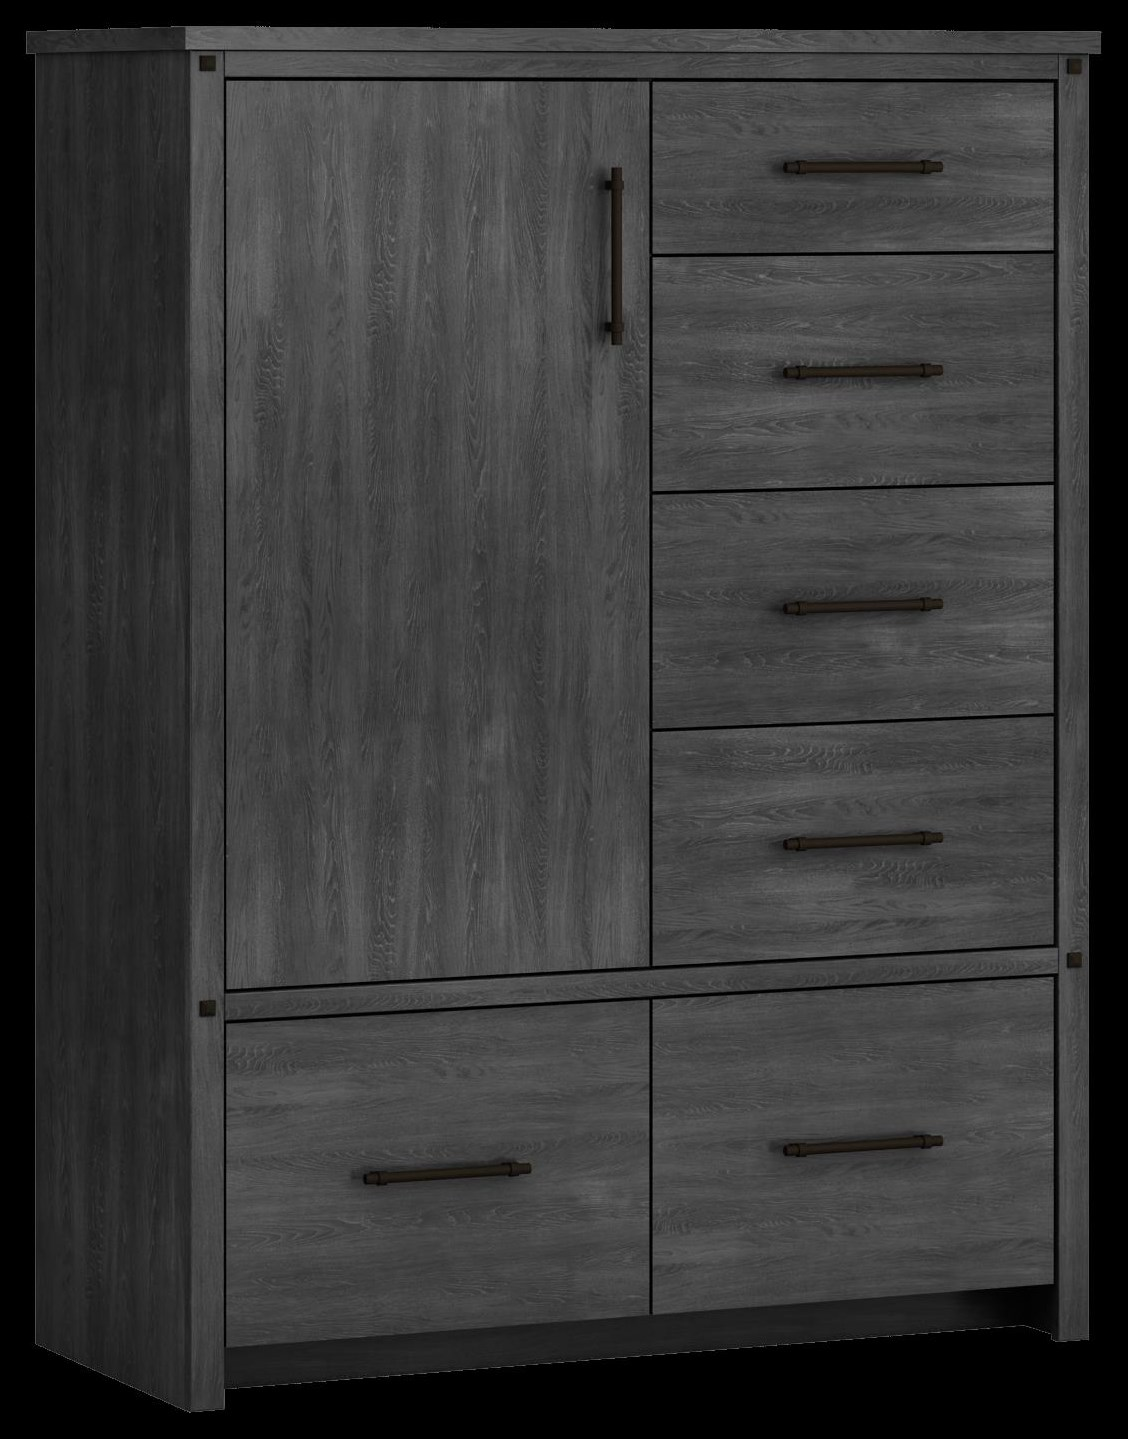 607 Armoire, 1 door, 6 drawer by Defehr at Stoney Creek Furniture